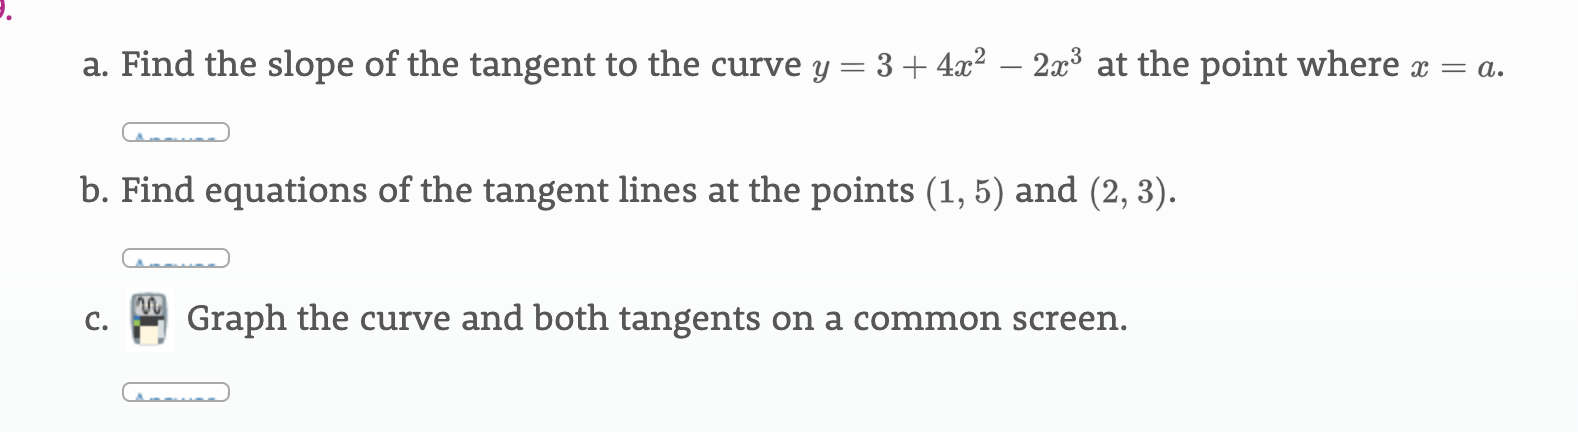 a. Find the slope of the tangent to the curve y = 3 + 4x2 - 2x3 at the point where x = a b. Find equations of the tangent lines at the points (1, 5) and (2, 3) Graph the curve and both tangents on a common screen. C.